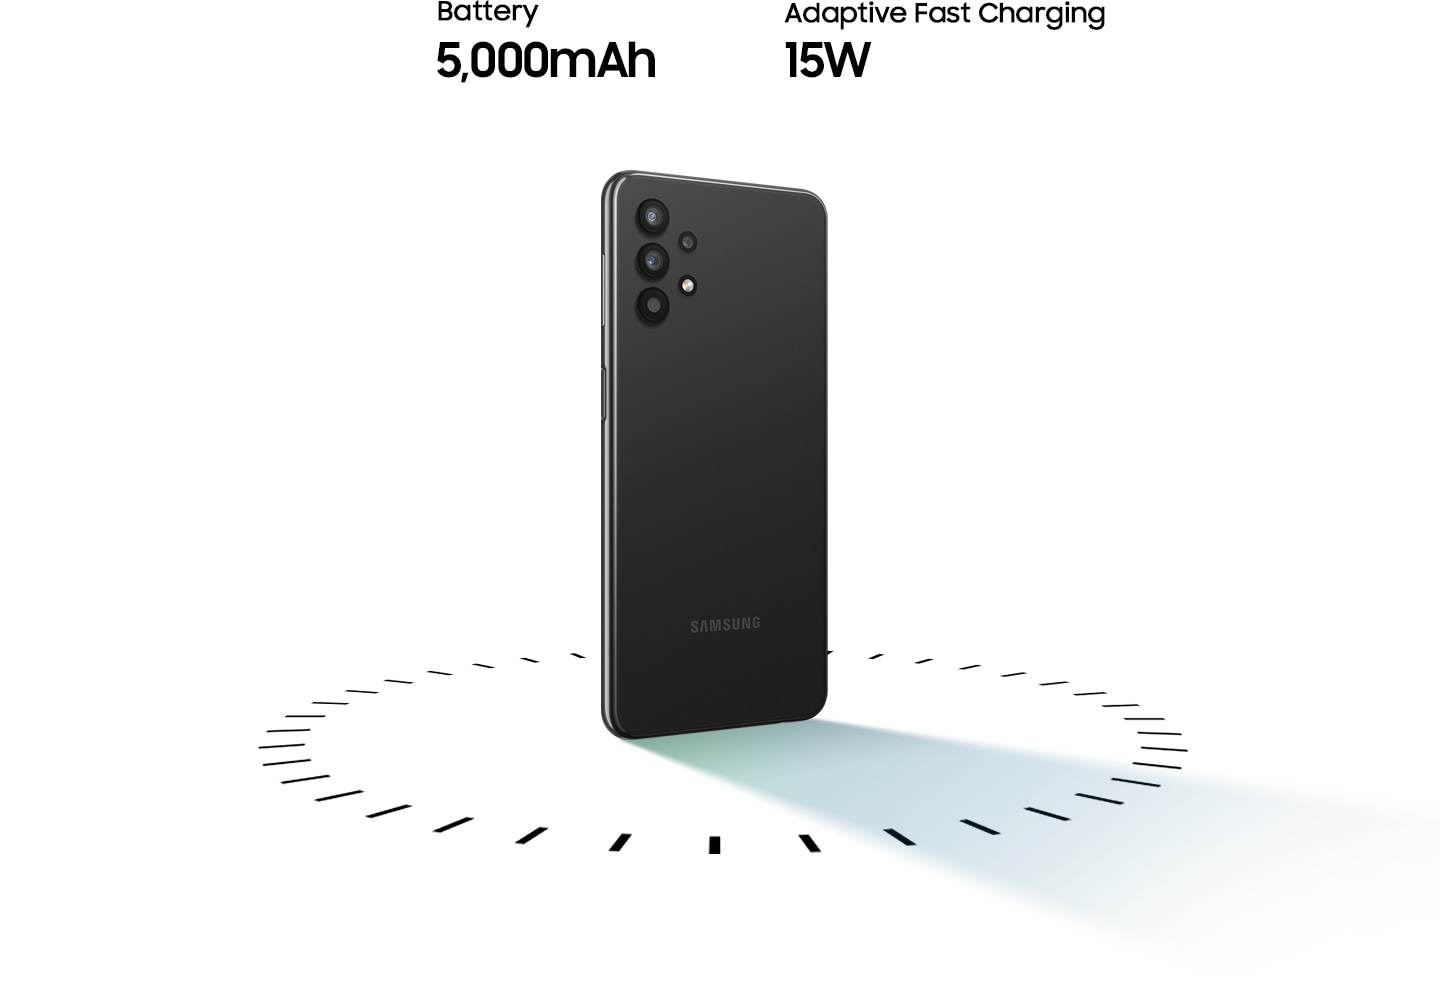 Galaxy A32 5G stands up, surrounded by circular dots, with the text of 5,000mAh Battery and 15W Adaptive Fast charging.